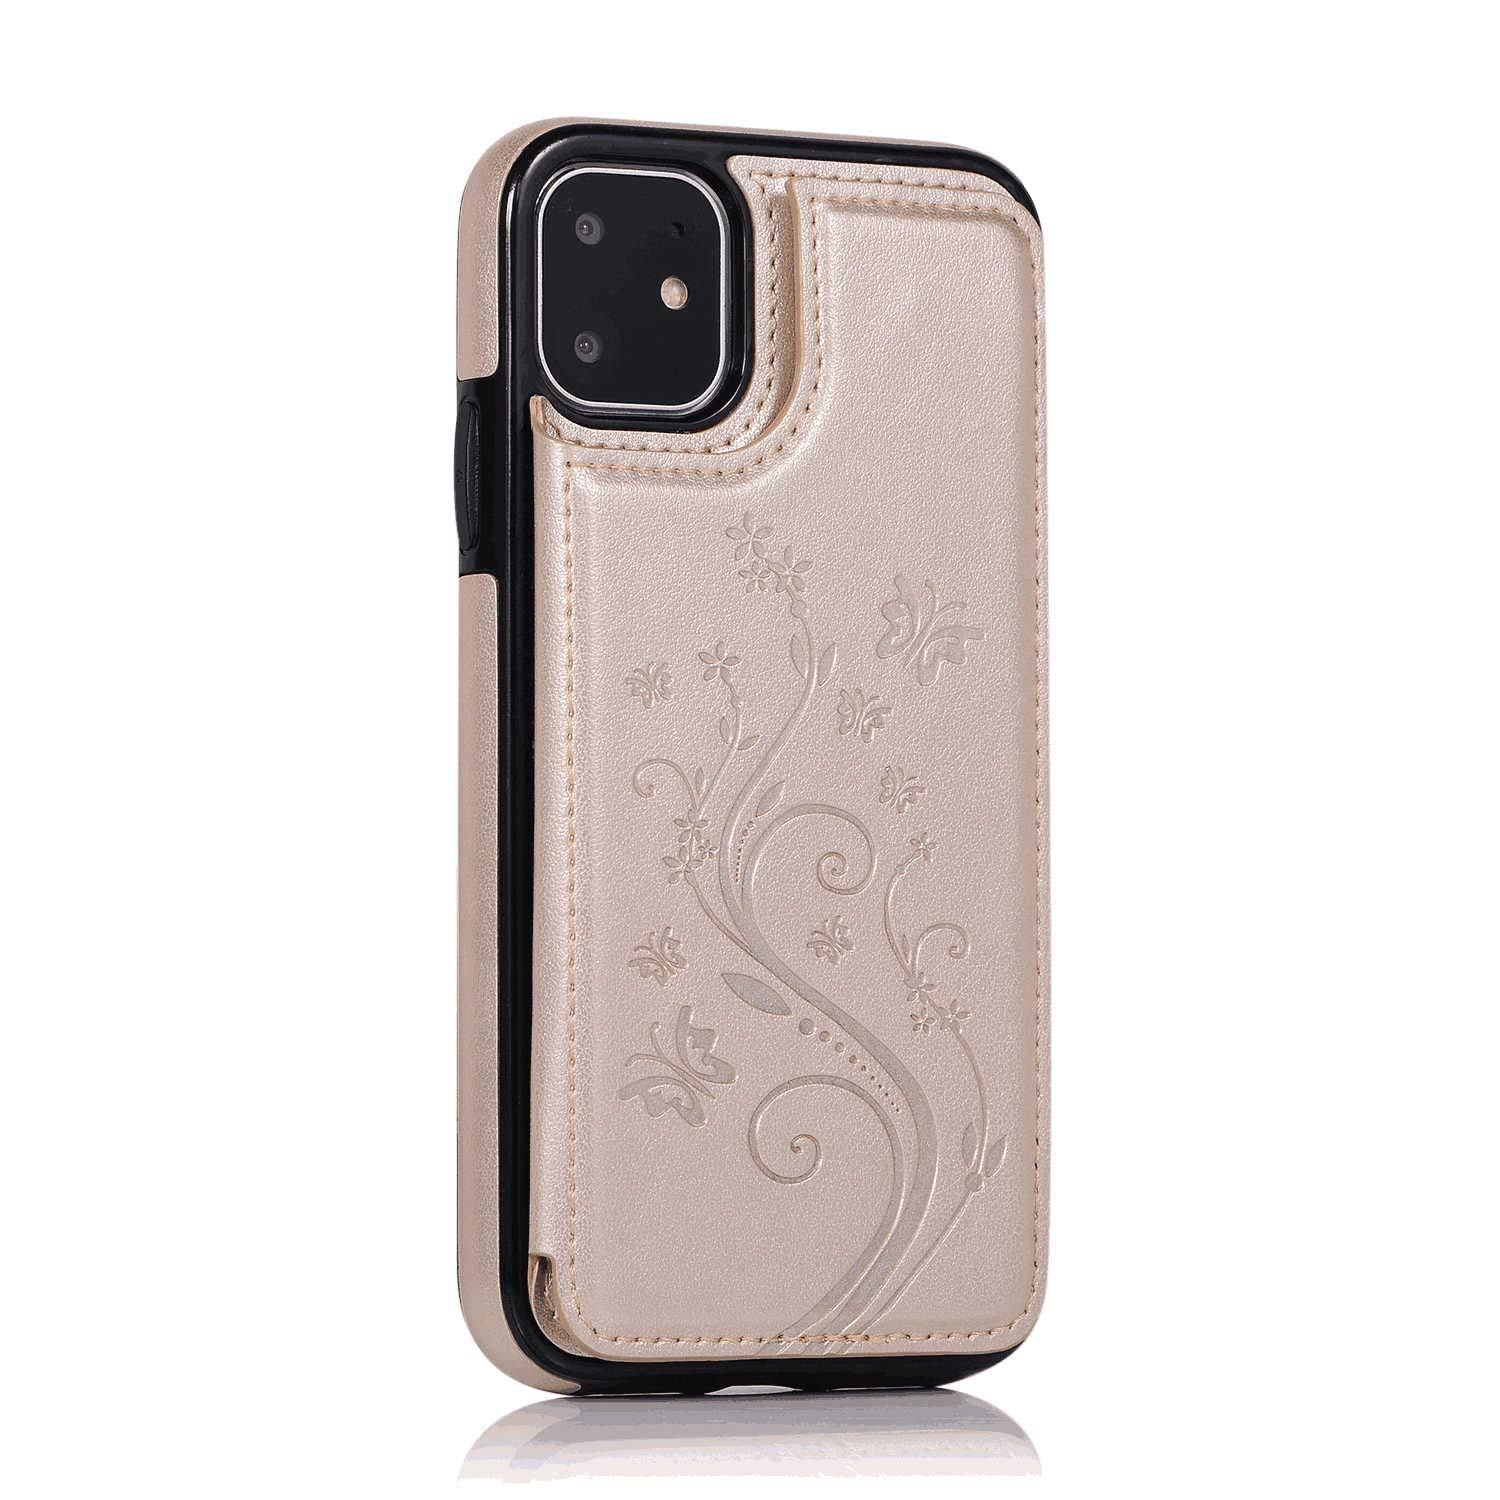 WiseSwim Simple-Style Leather Case for iPhone 7 Flip Cover fit for iPhone 7 Business Gifts